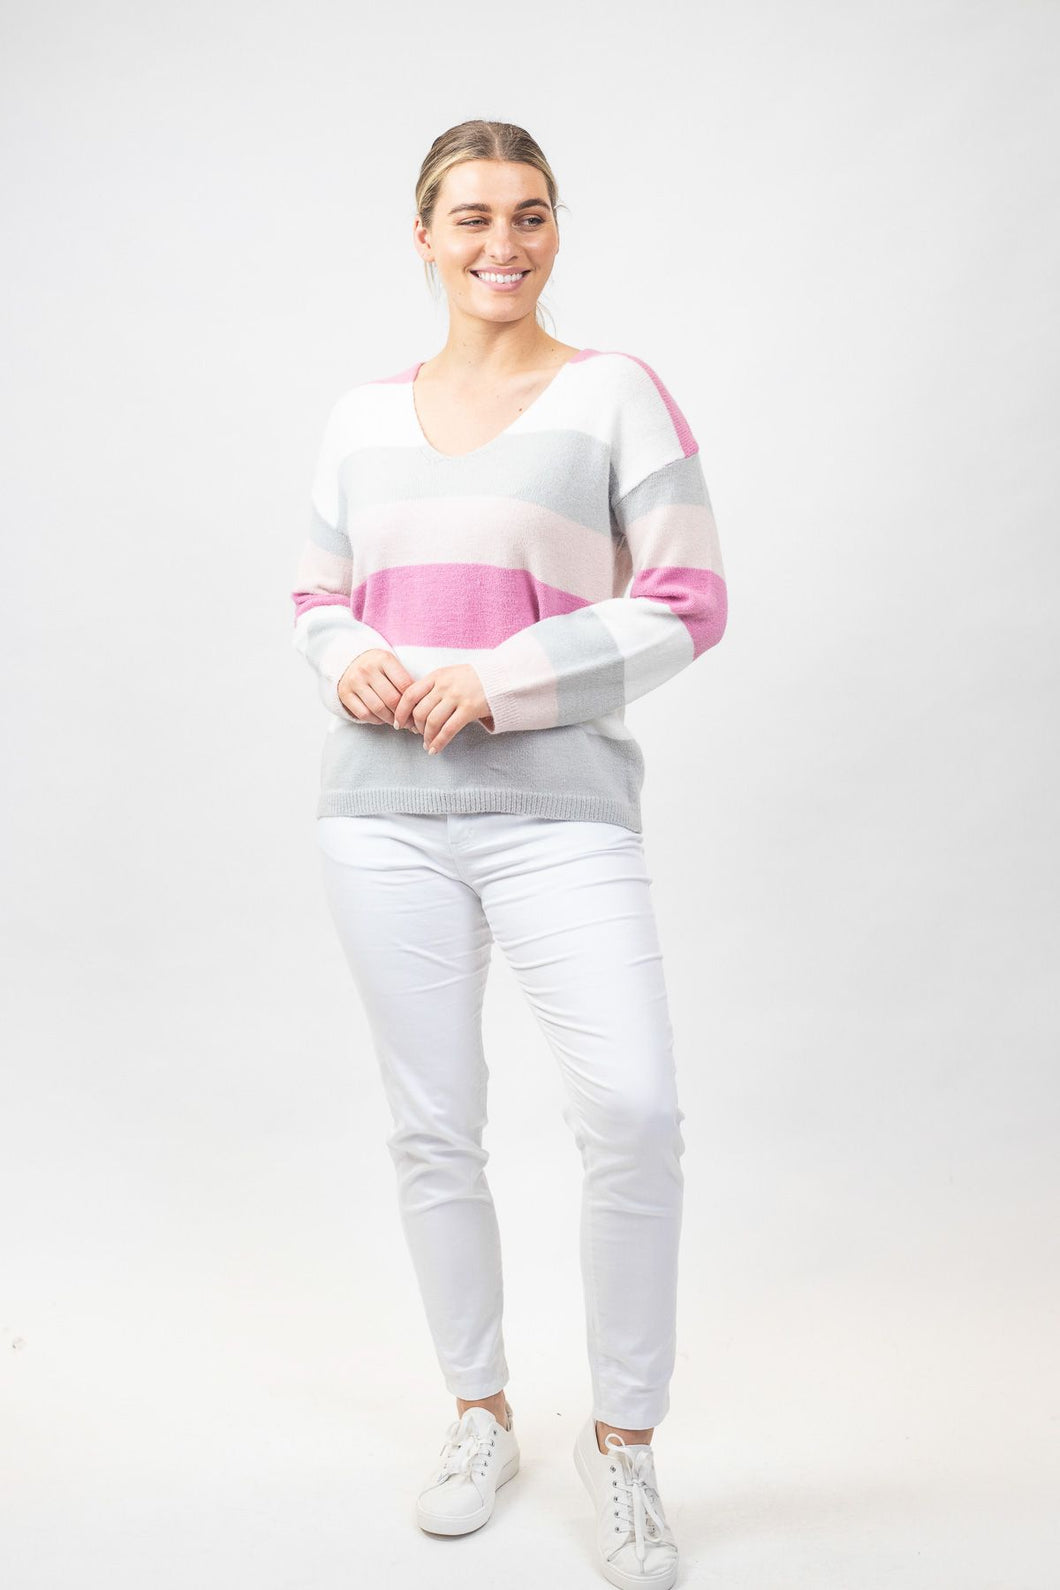 Olive Et Julie RE-21 Knit Pinks